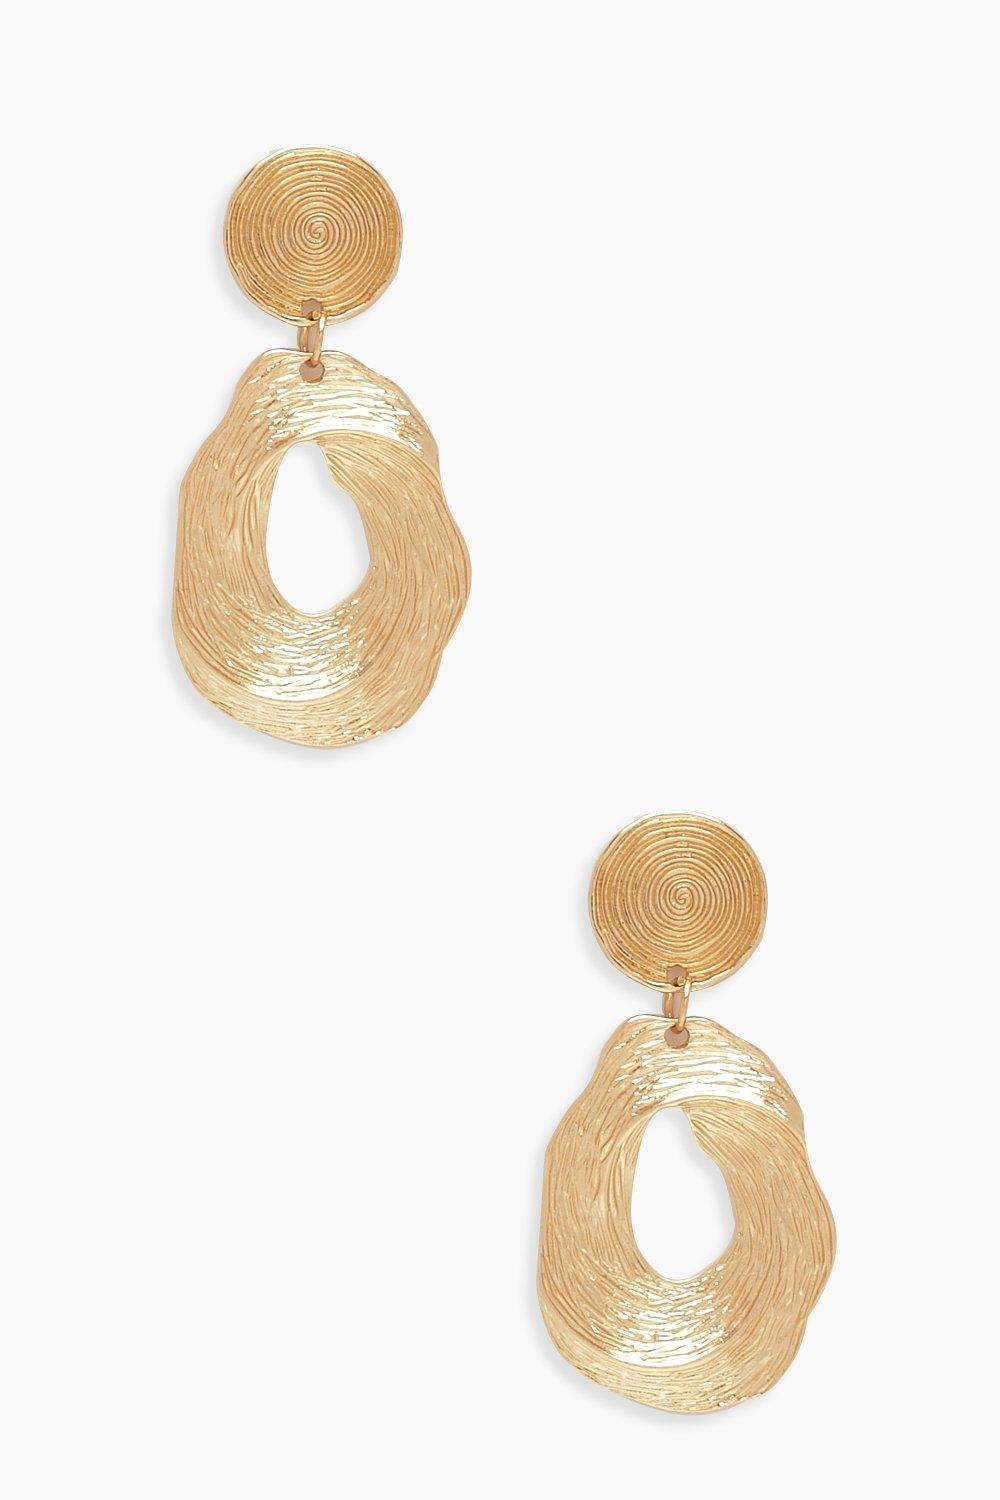 Spiral Textured Statement Earrings